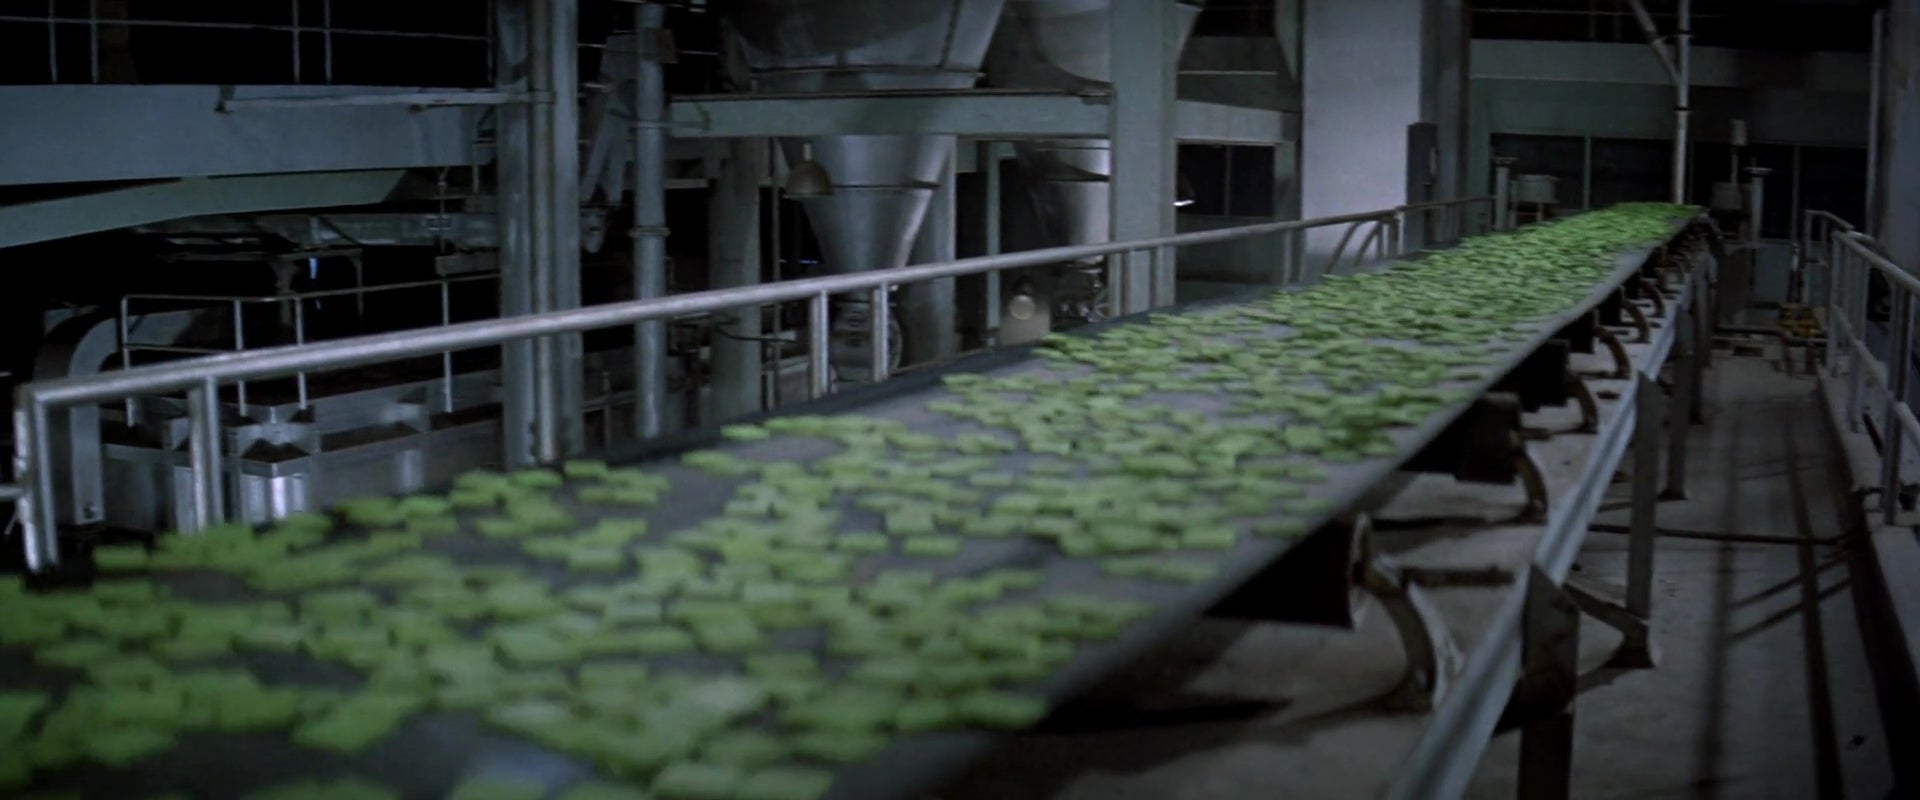 A still from the film Soylent Green, showing a conveyor belt transporting Soylent Green.